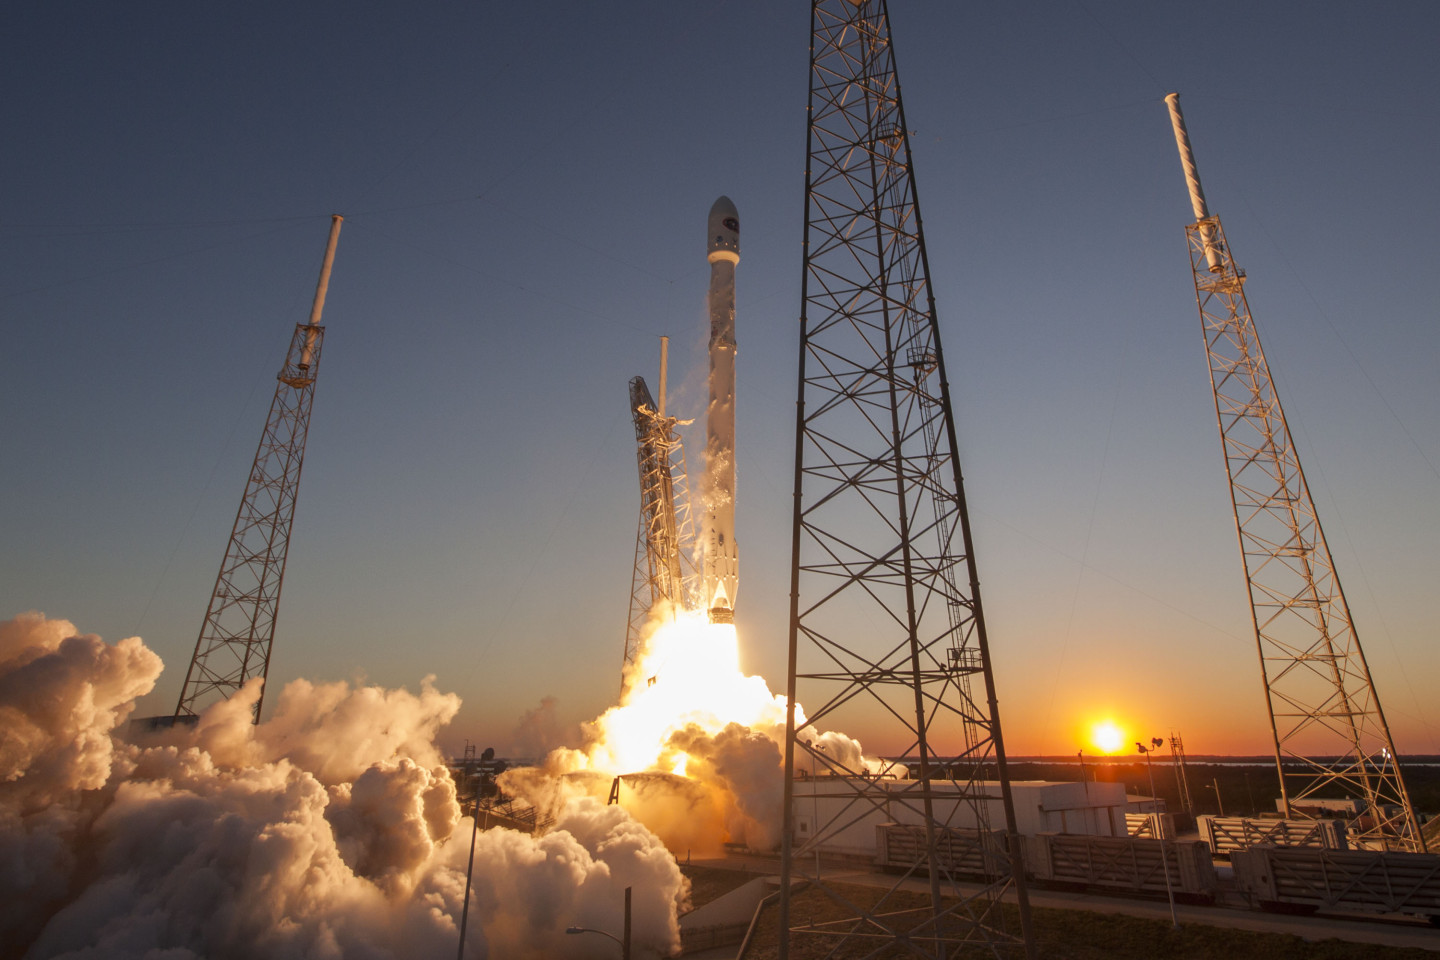 A SpaceX Falcon 9 lifts off from Cape Canaveral, Florida, on Feb. 11, carrying NASA's Deep Space Climate Observatory mission.  SpaceX